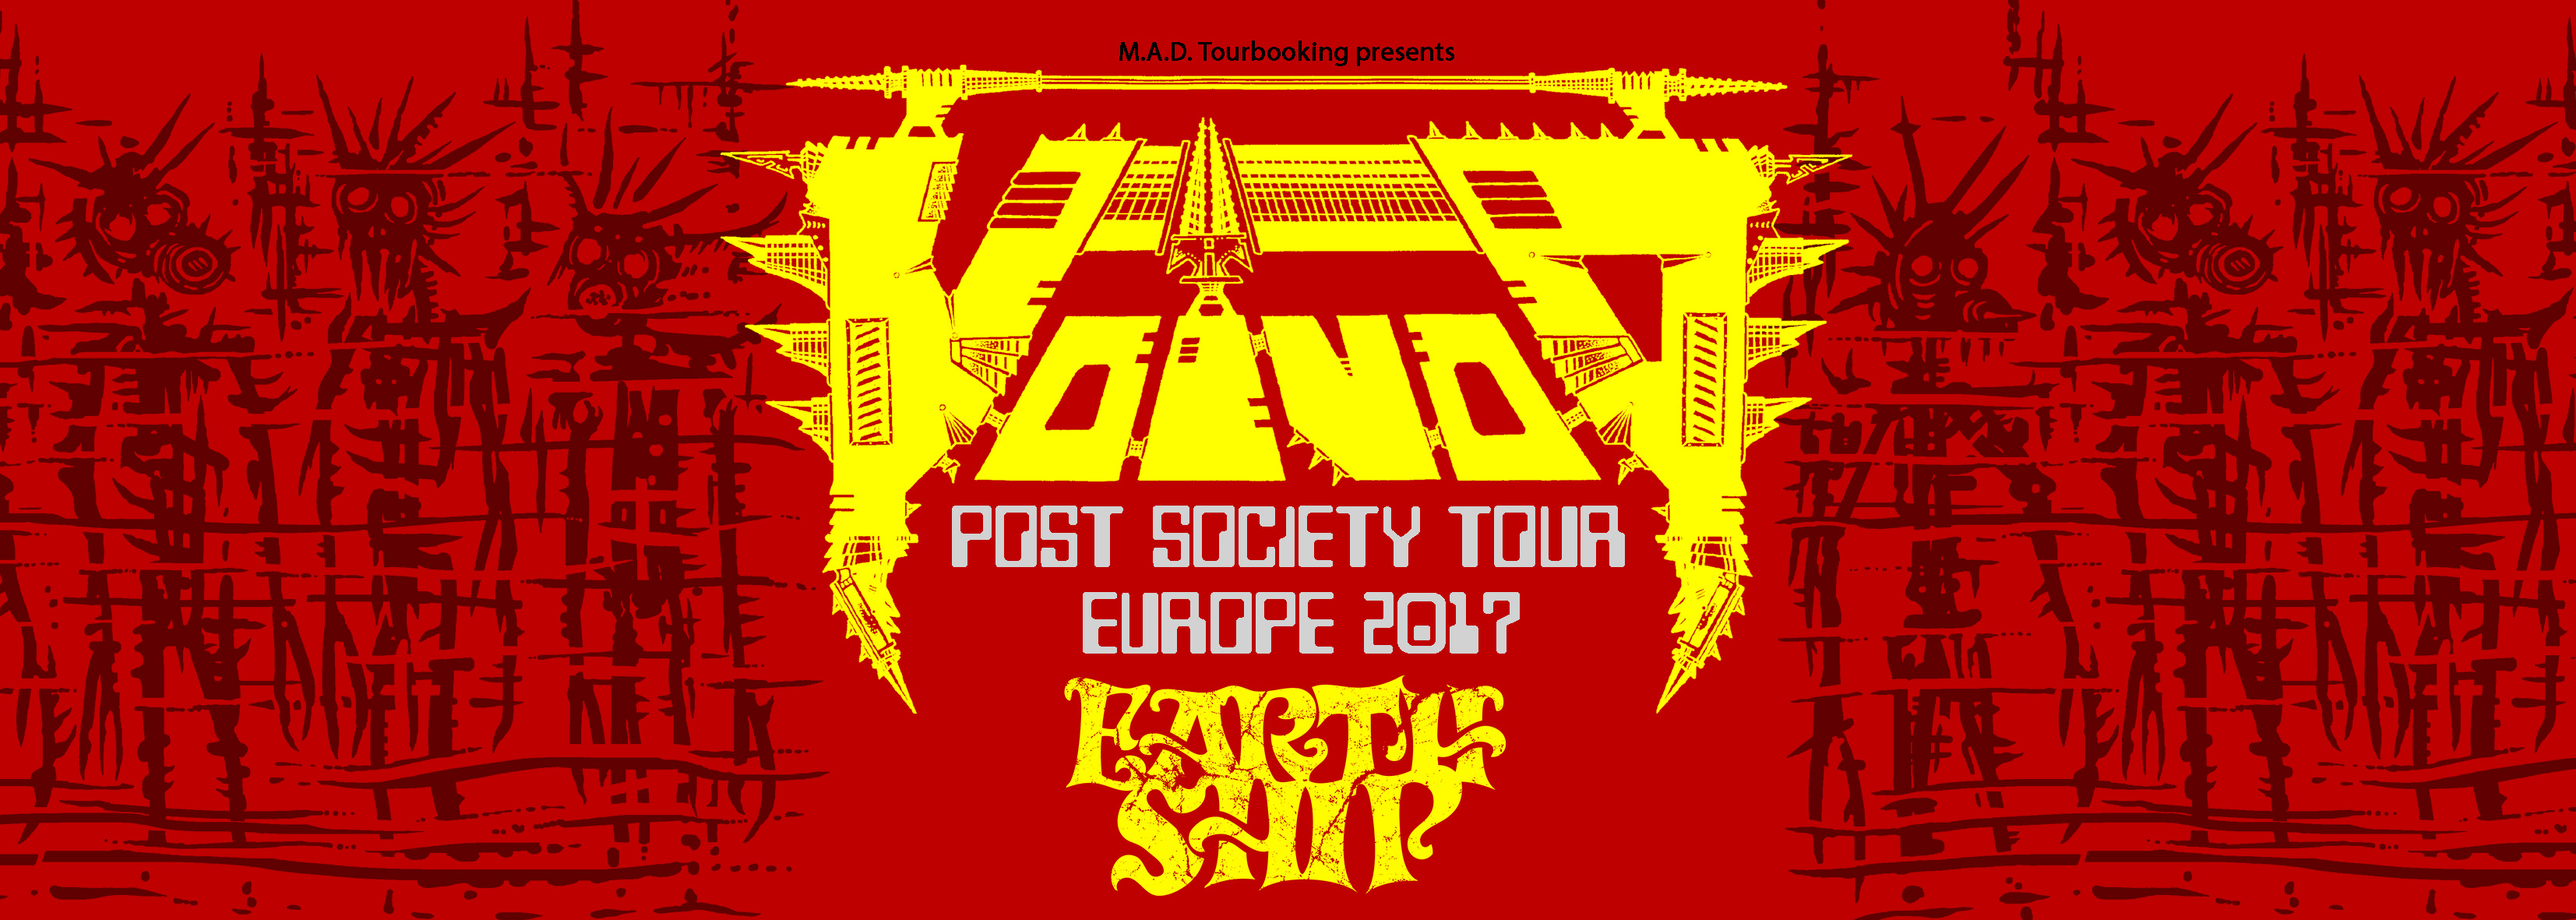 VOIVOD - POST SOCIETY TOUR EUROPE 2017 PART II